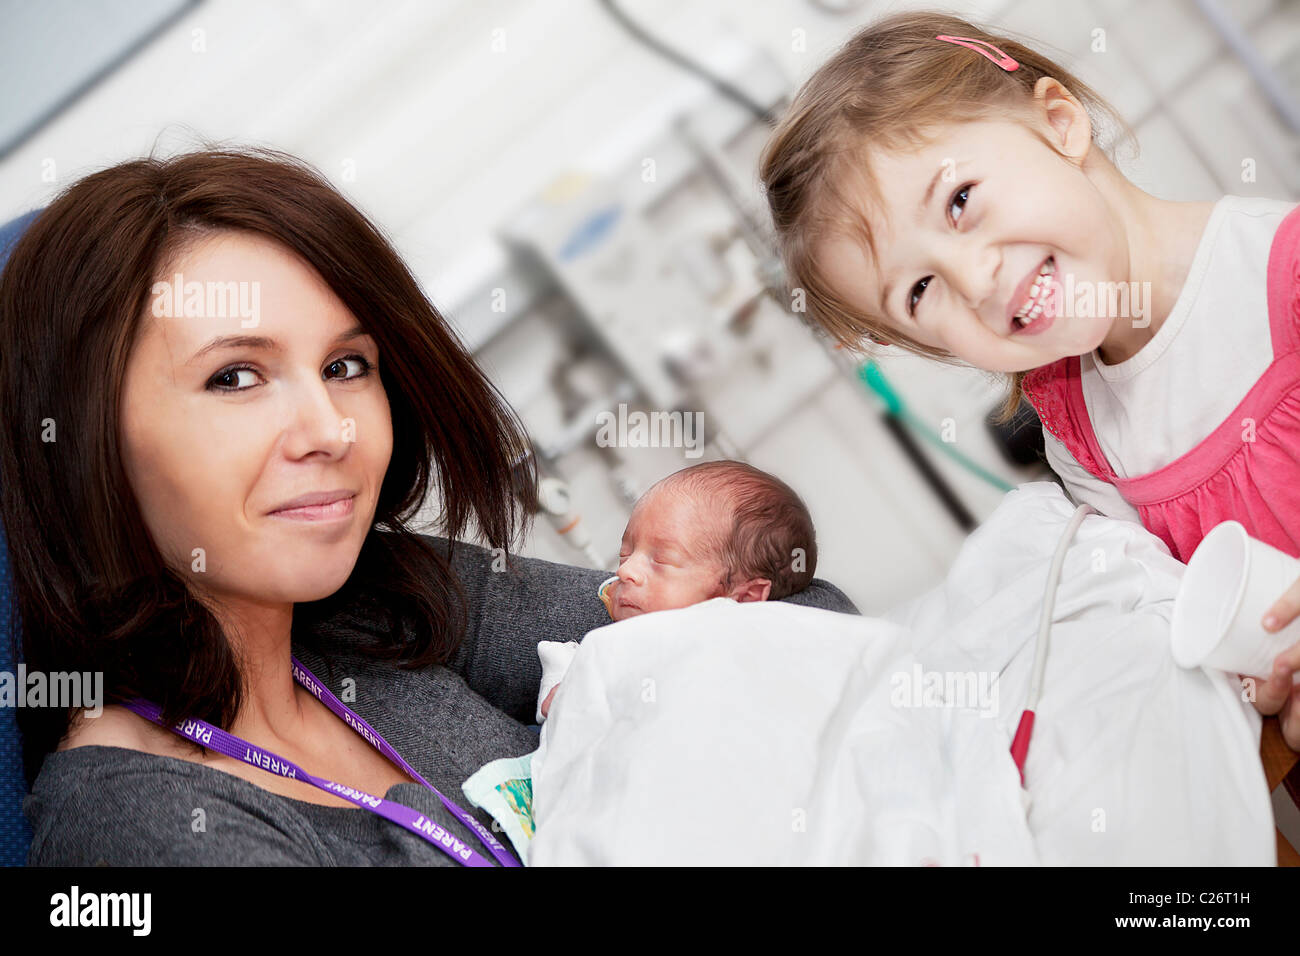 mum with her daughter and premature baby boy - Stock Image